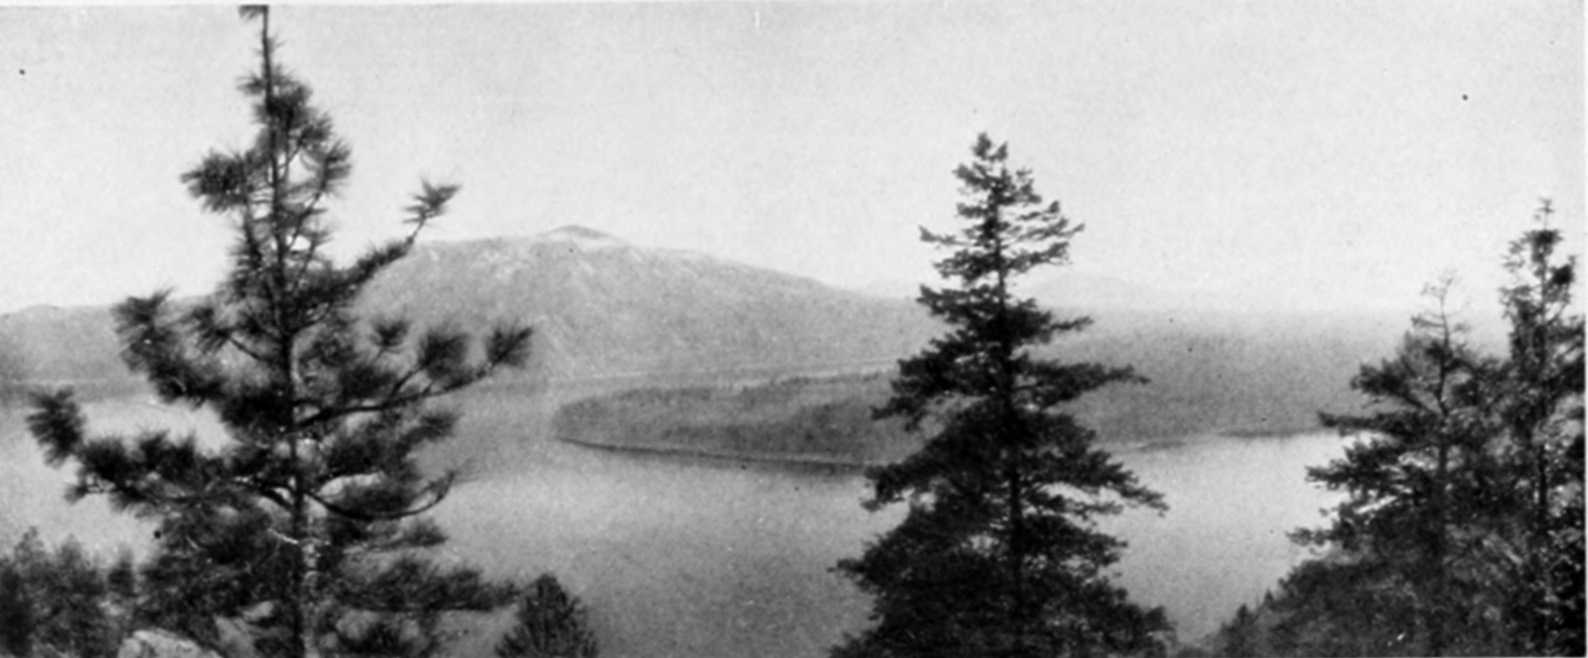 The Columbia River Its History, Its Myths, Its Scenery, Its Commerce p 381.png